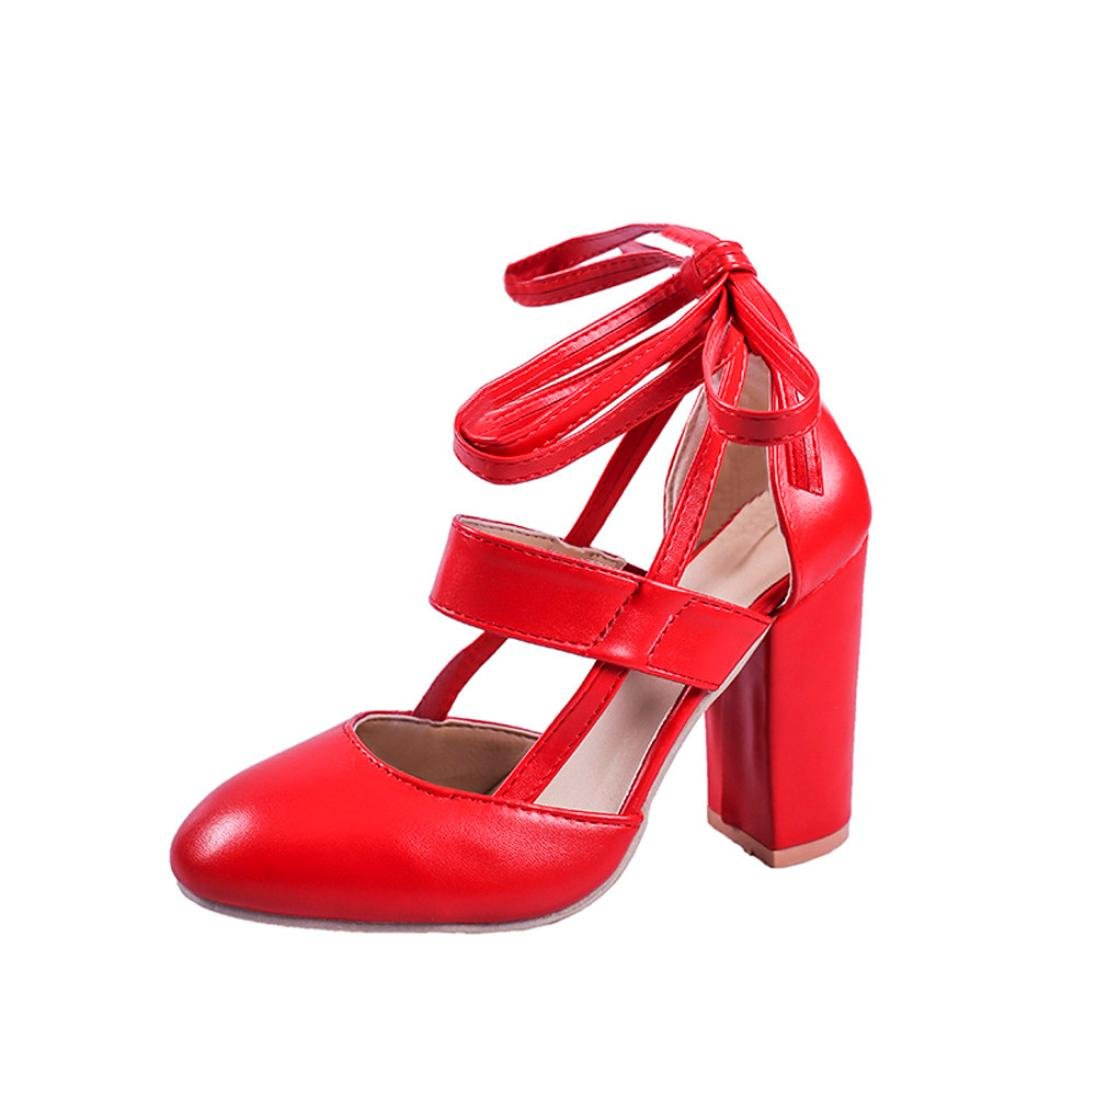 LtrottedJ Women's Fashion Heeled Sandals Ankle Strap Dress Sandals for Party Wedding (42, Red)